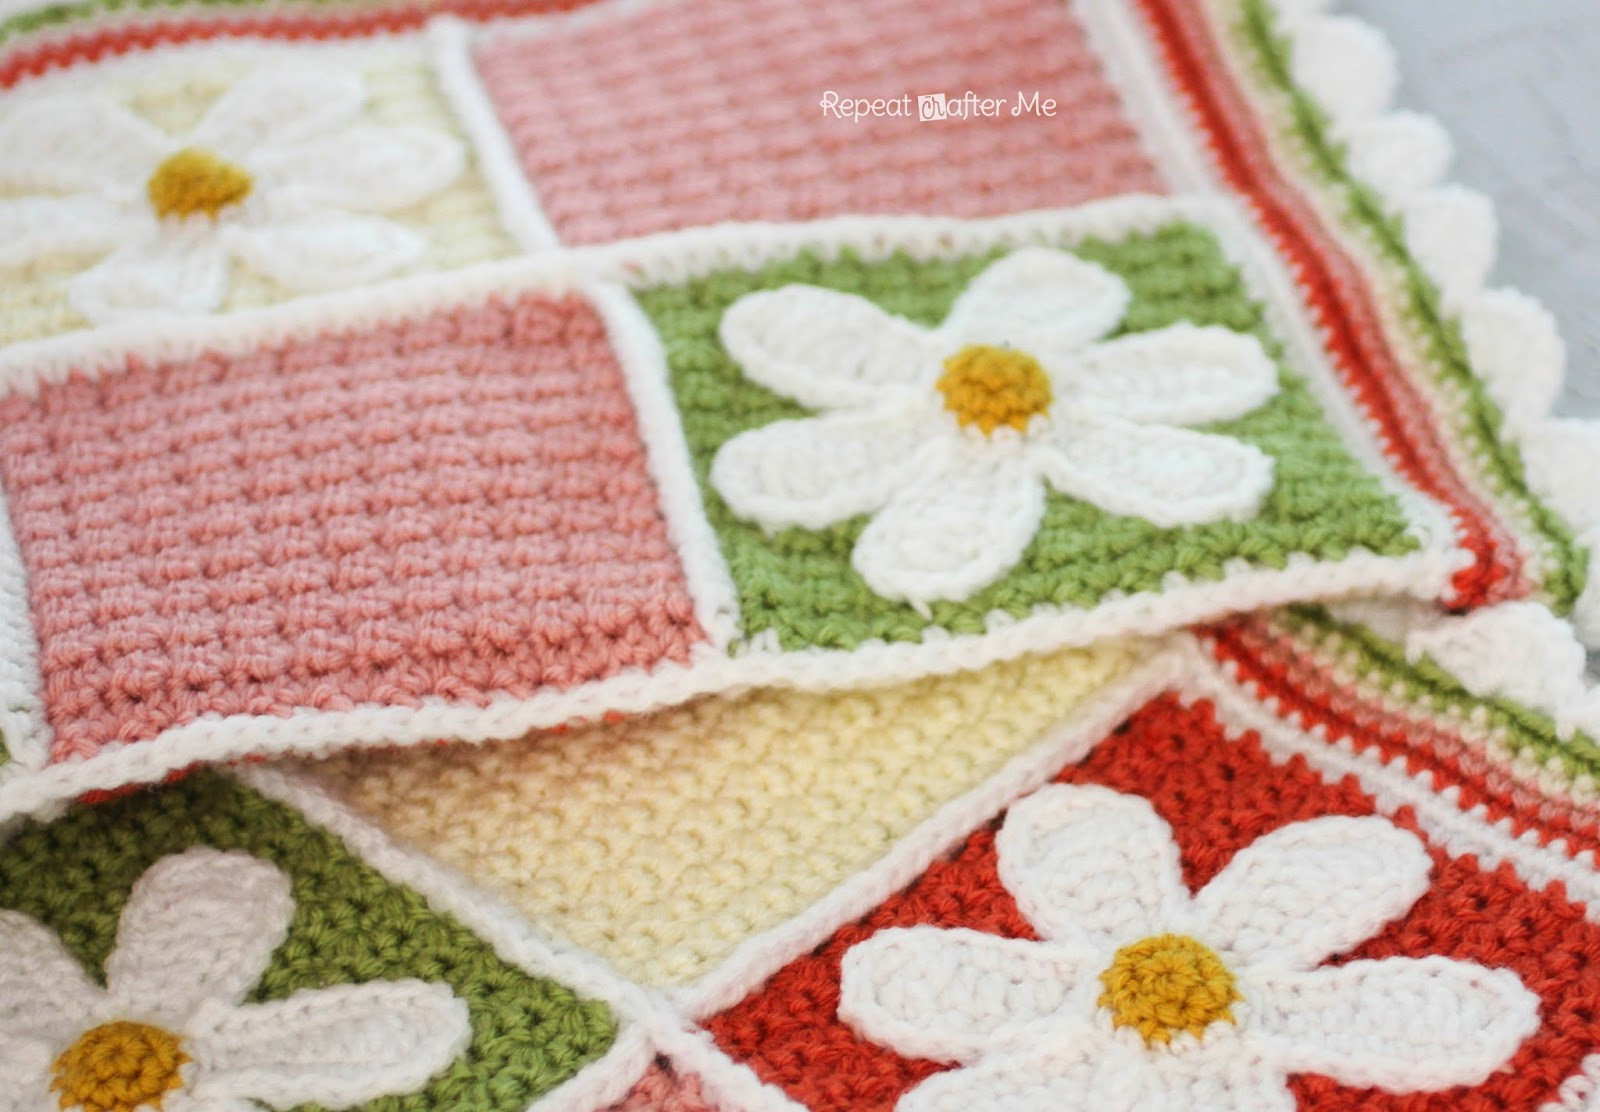 Free Granny Square Afghan Patterns New Repeat Crafter Me solid Granny Square Crochet Pattern Of Amazing 46 Pictures Free Granny Square Afghan Patterns